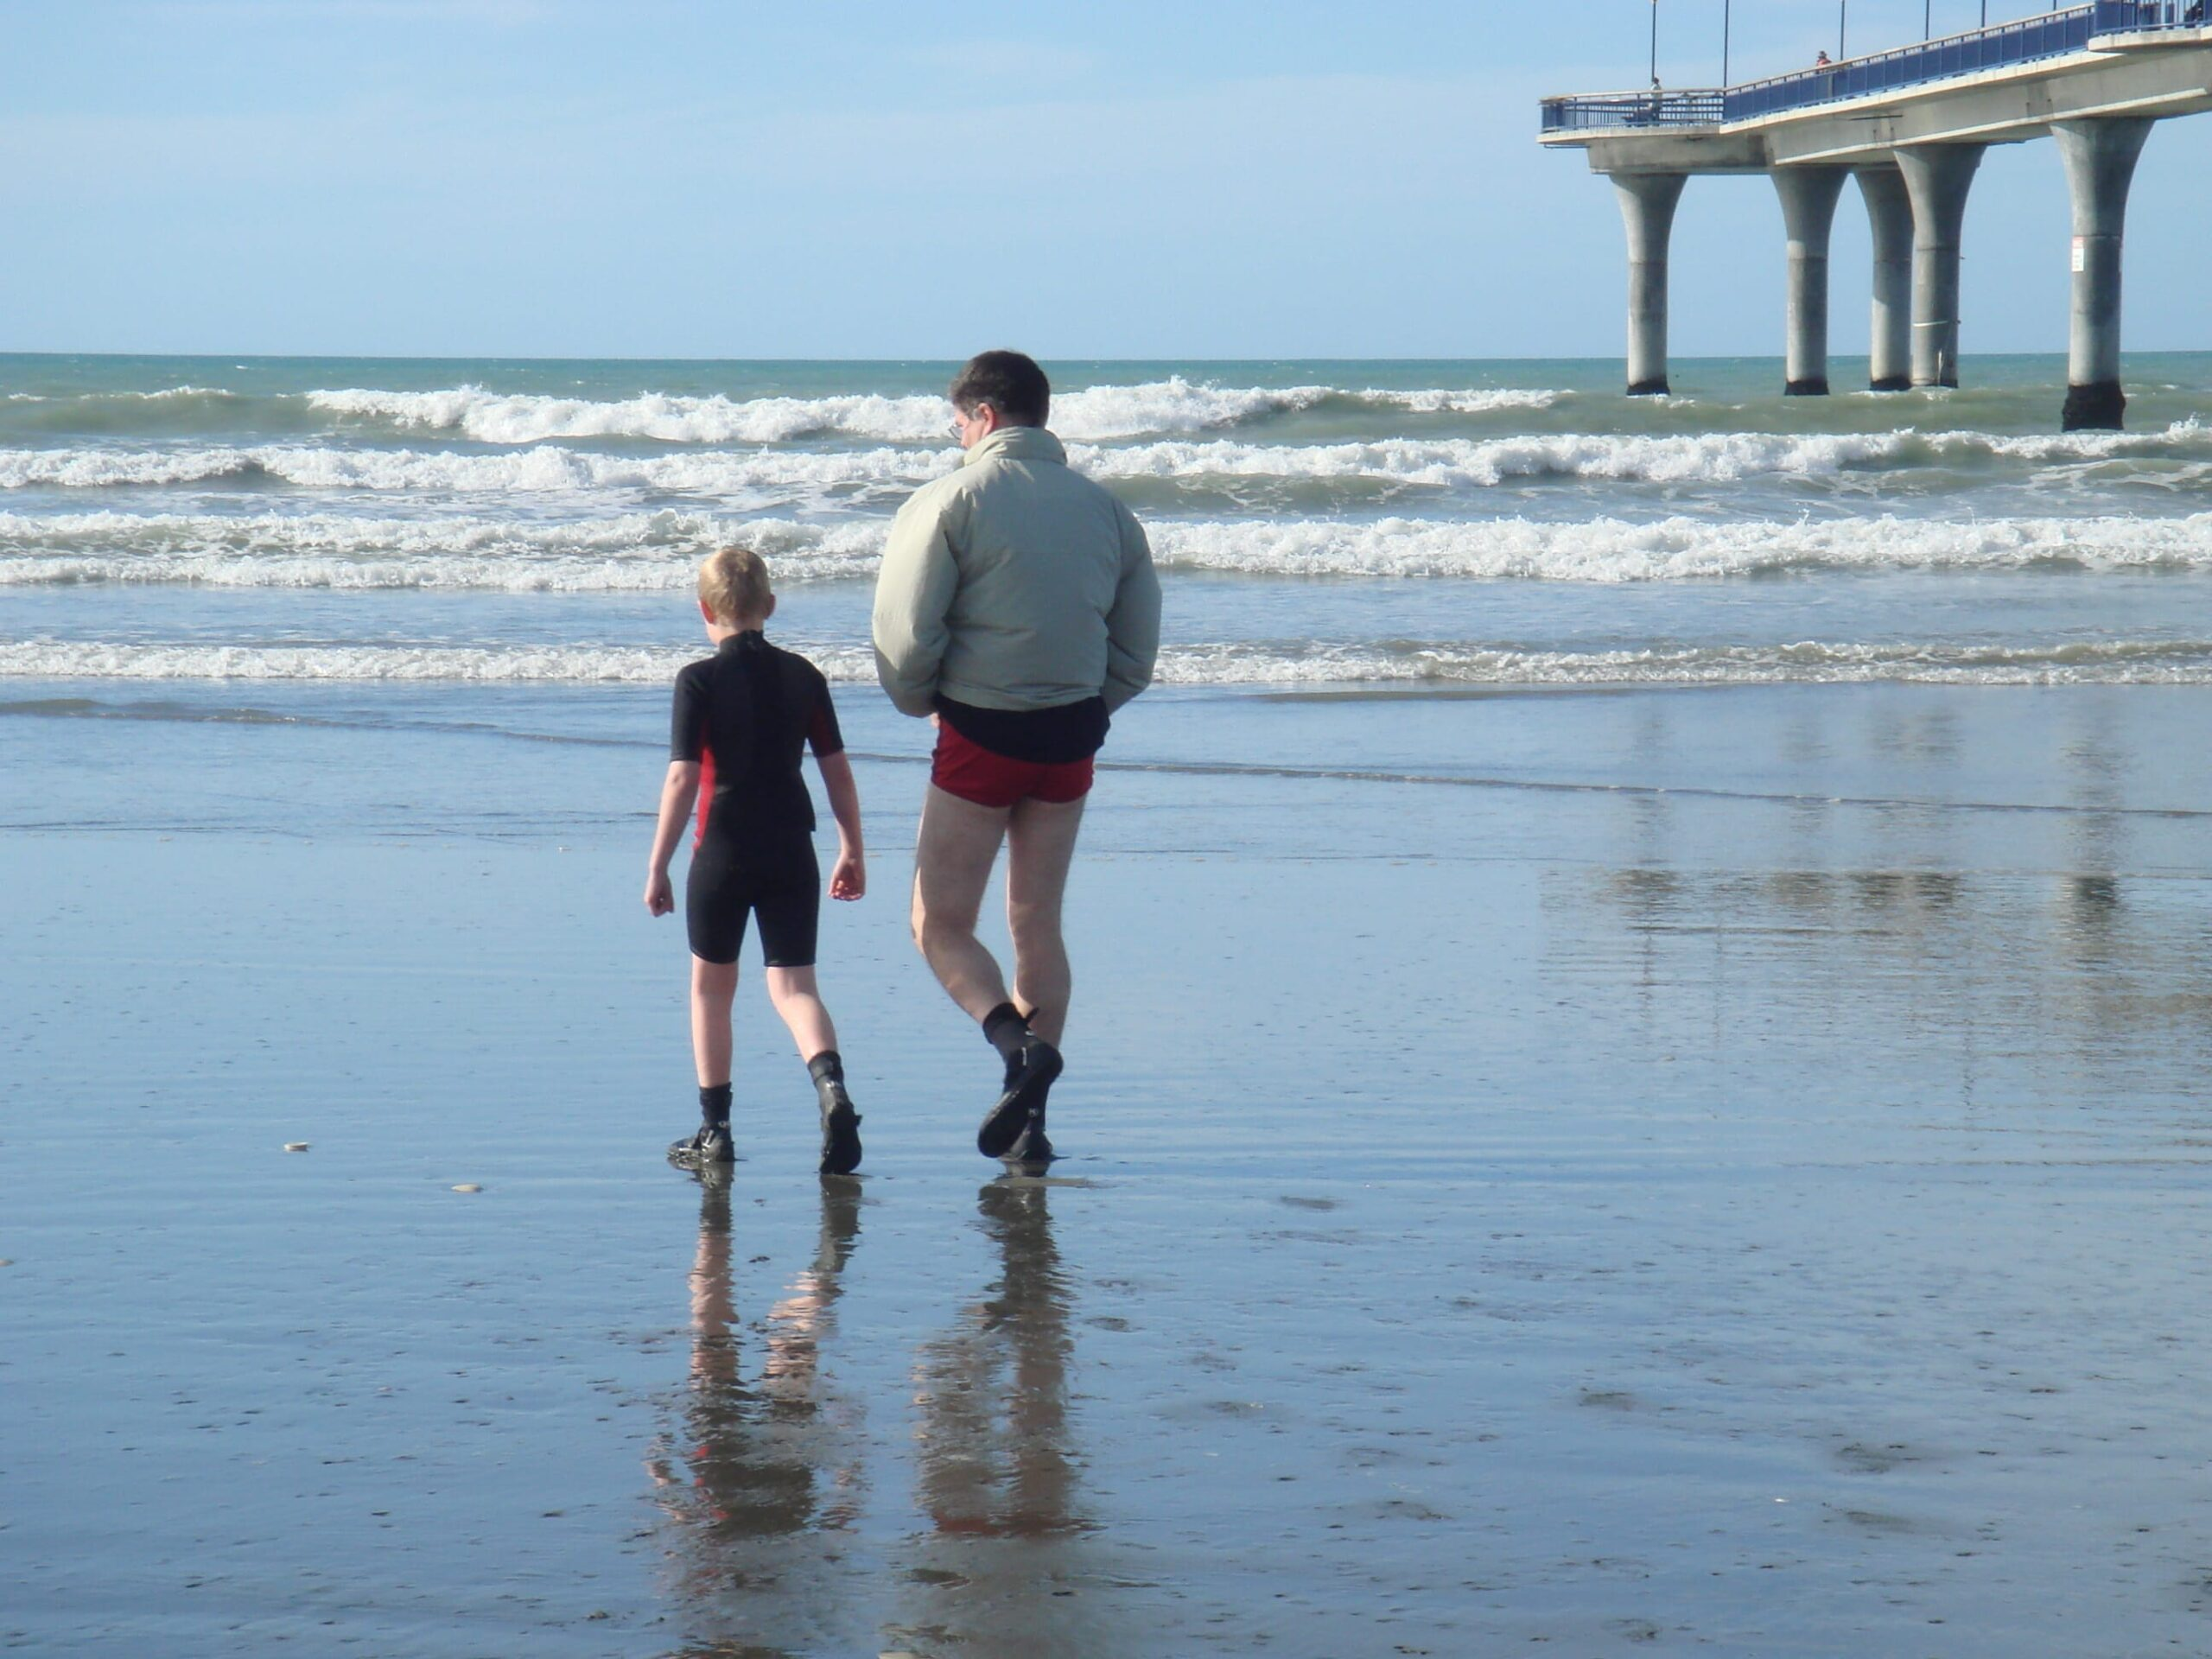 Grant and Mark walk on beach to open water surf in New Brighton, NZ